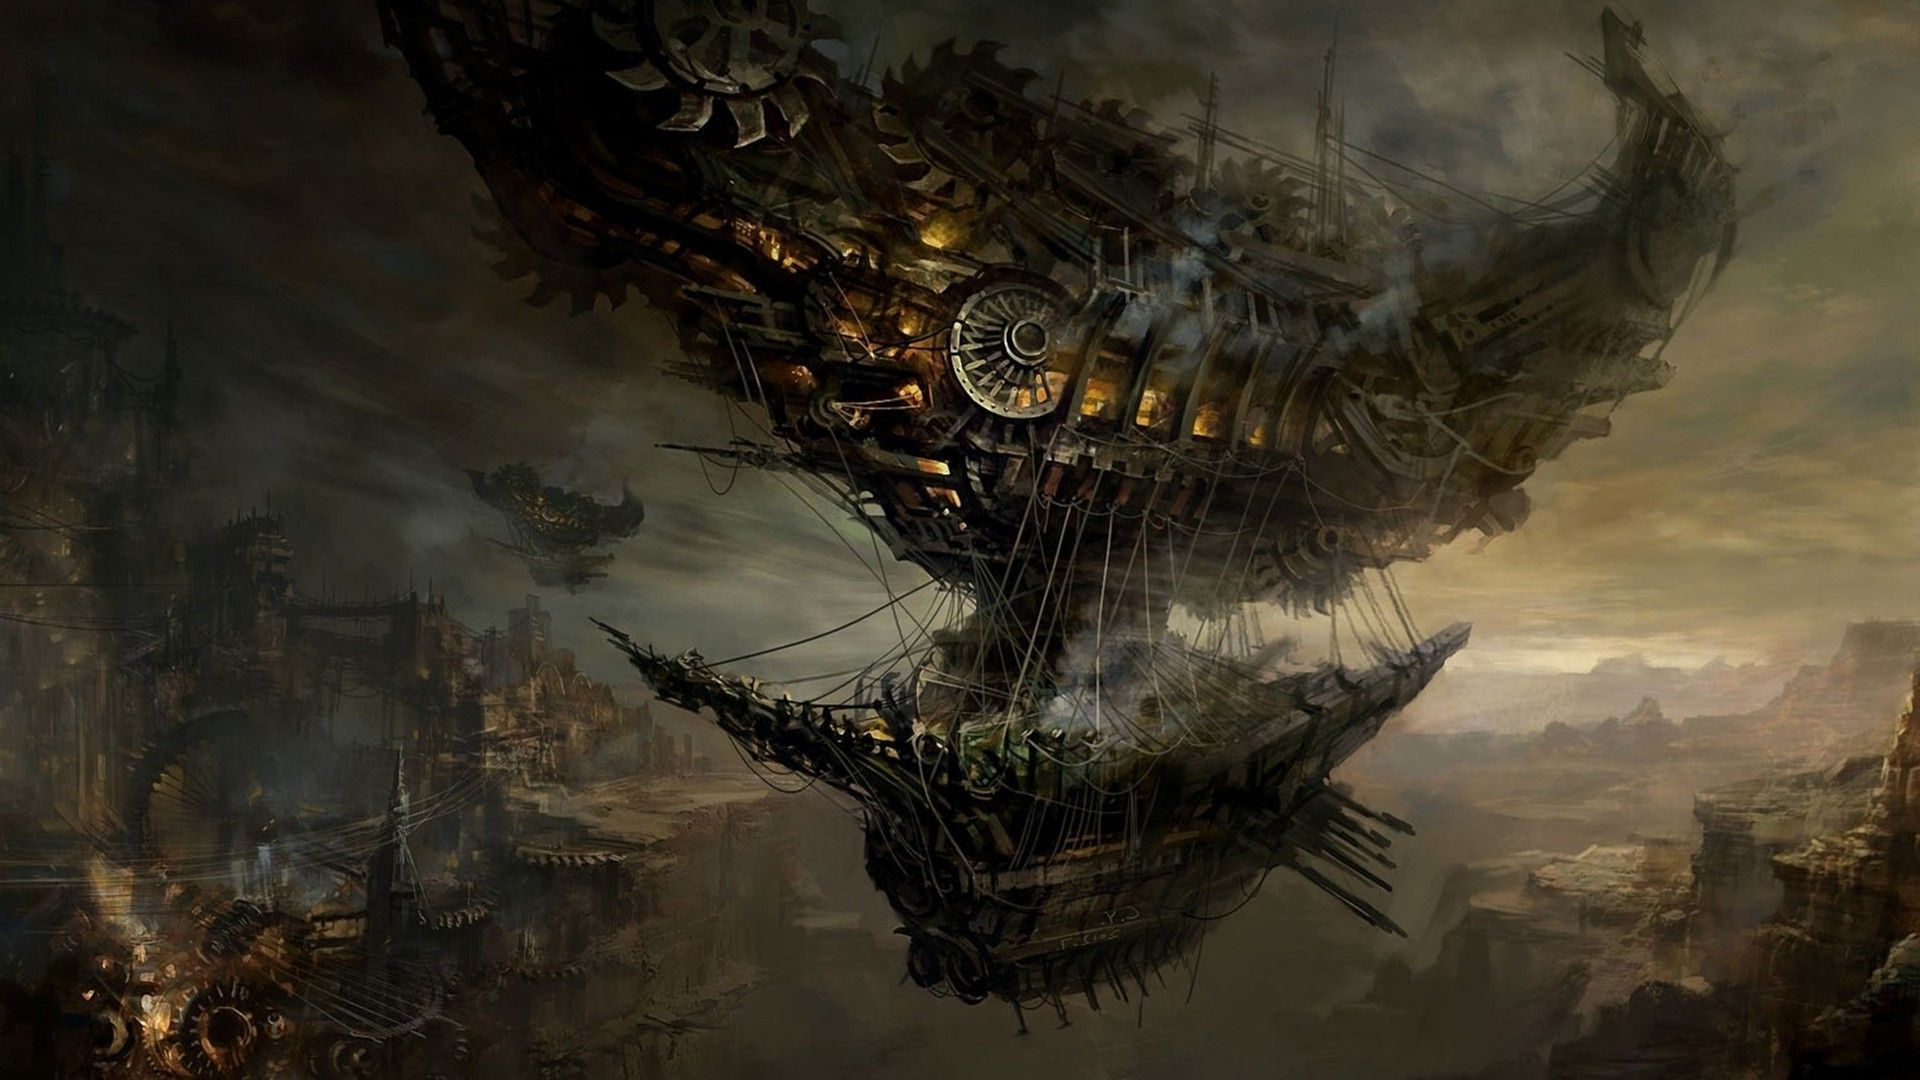 1920x1080 Full Hd Wallpapers: Steampunk Wallpaper 1920x1080